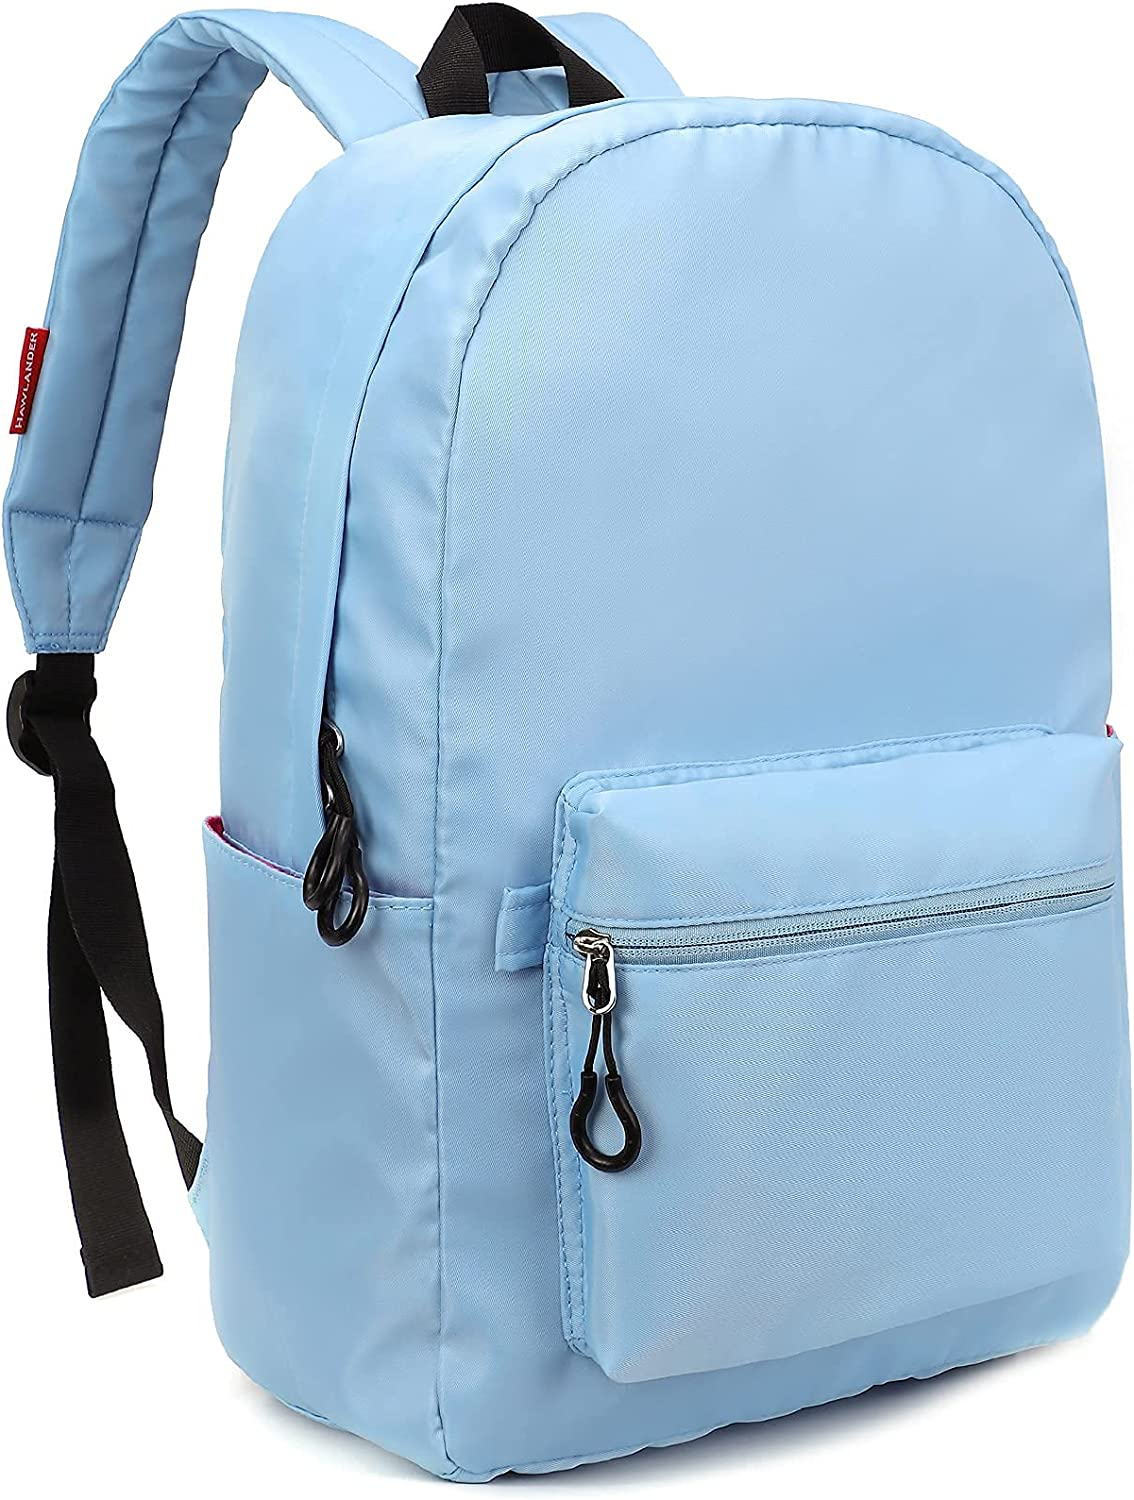 HawLander Lightweight Backpack famous for Max 57% OFF Women or 20 Mid-Volume Girls